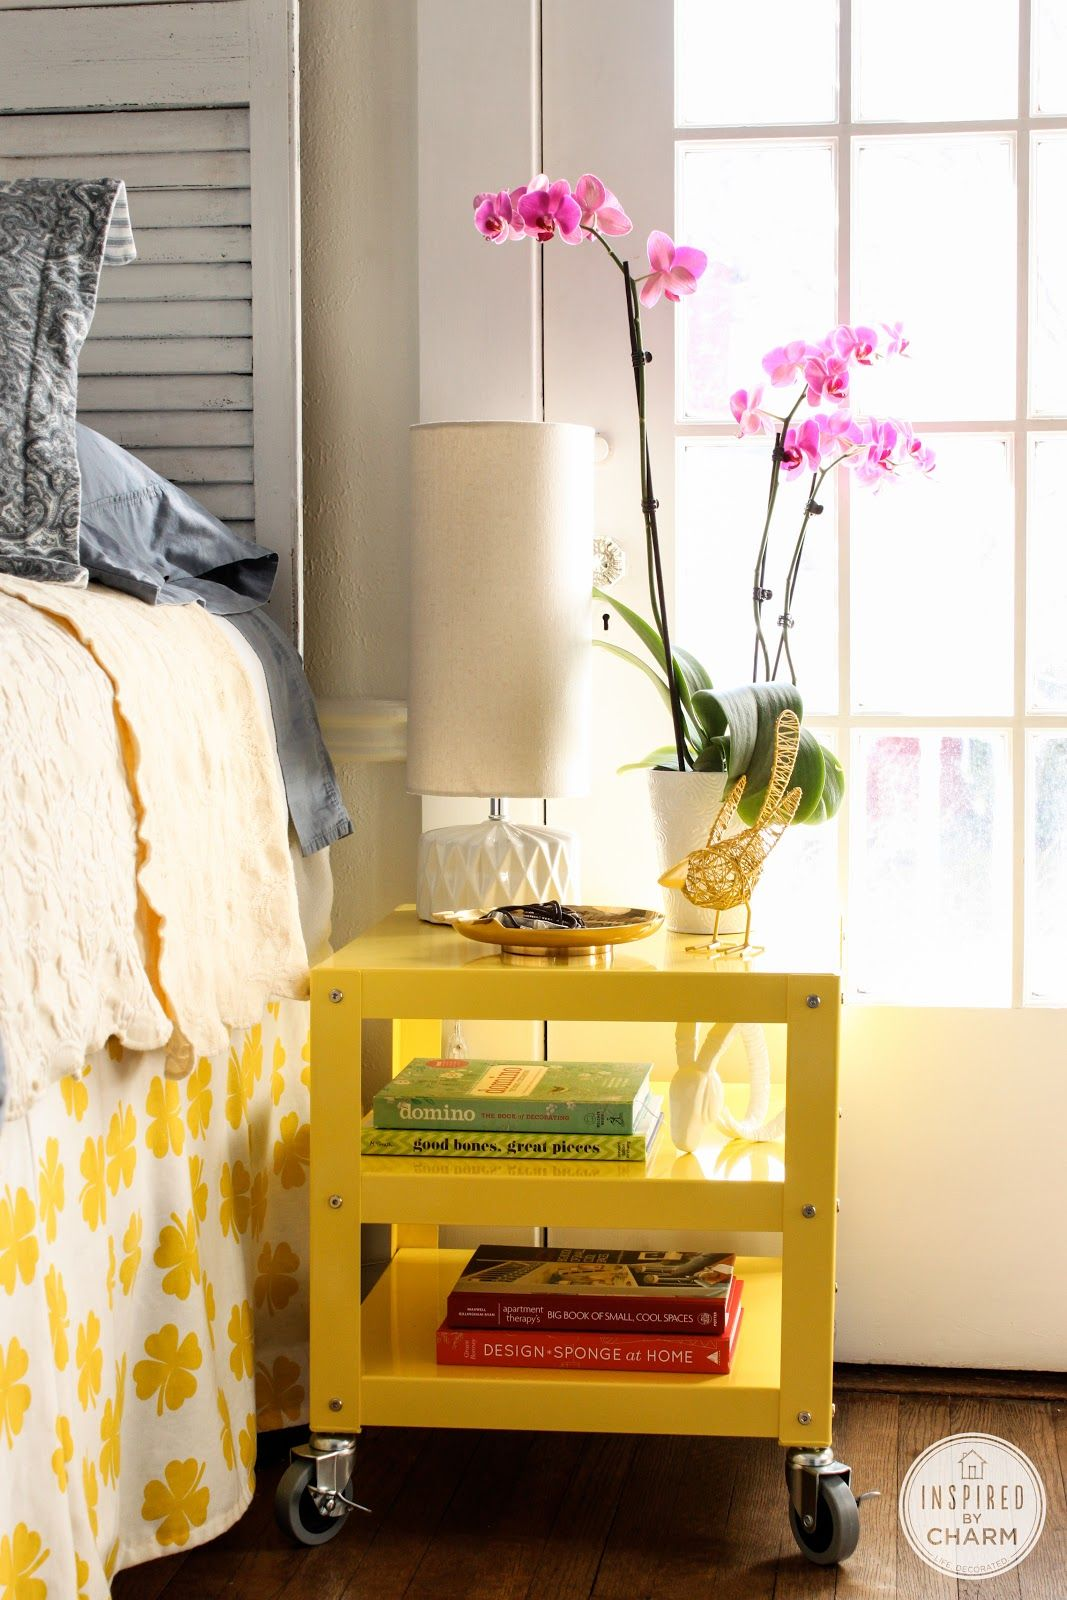 Love This End Table From CB Room Pinterest Bedside Table - Cb2 bedside table